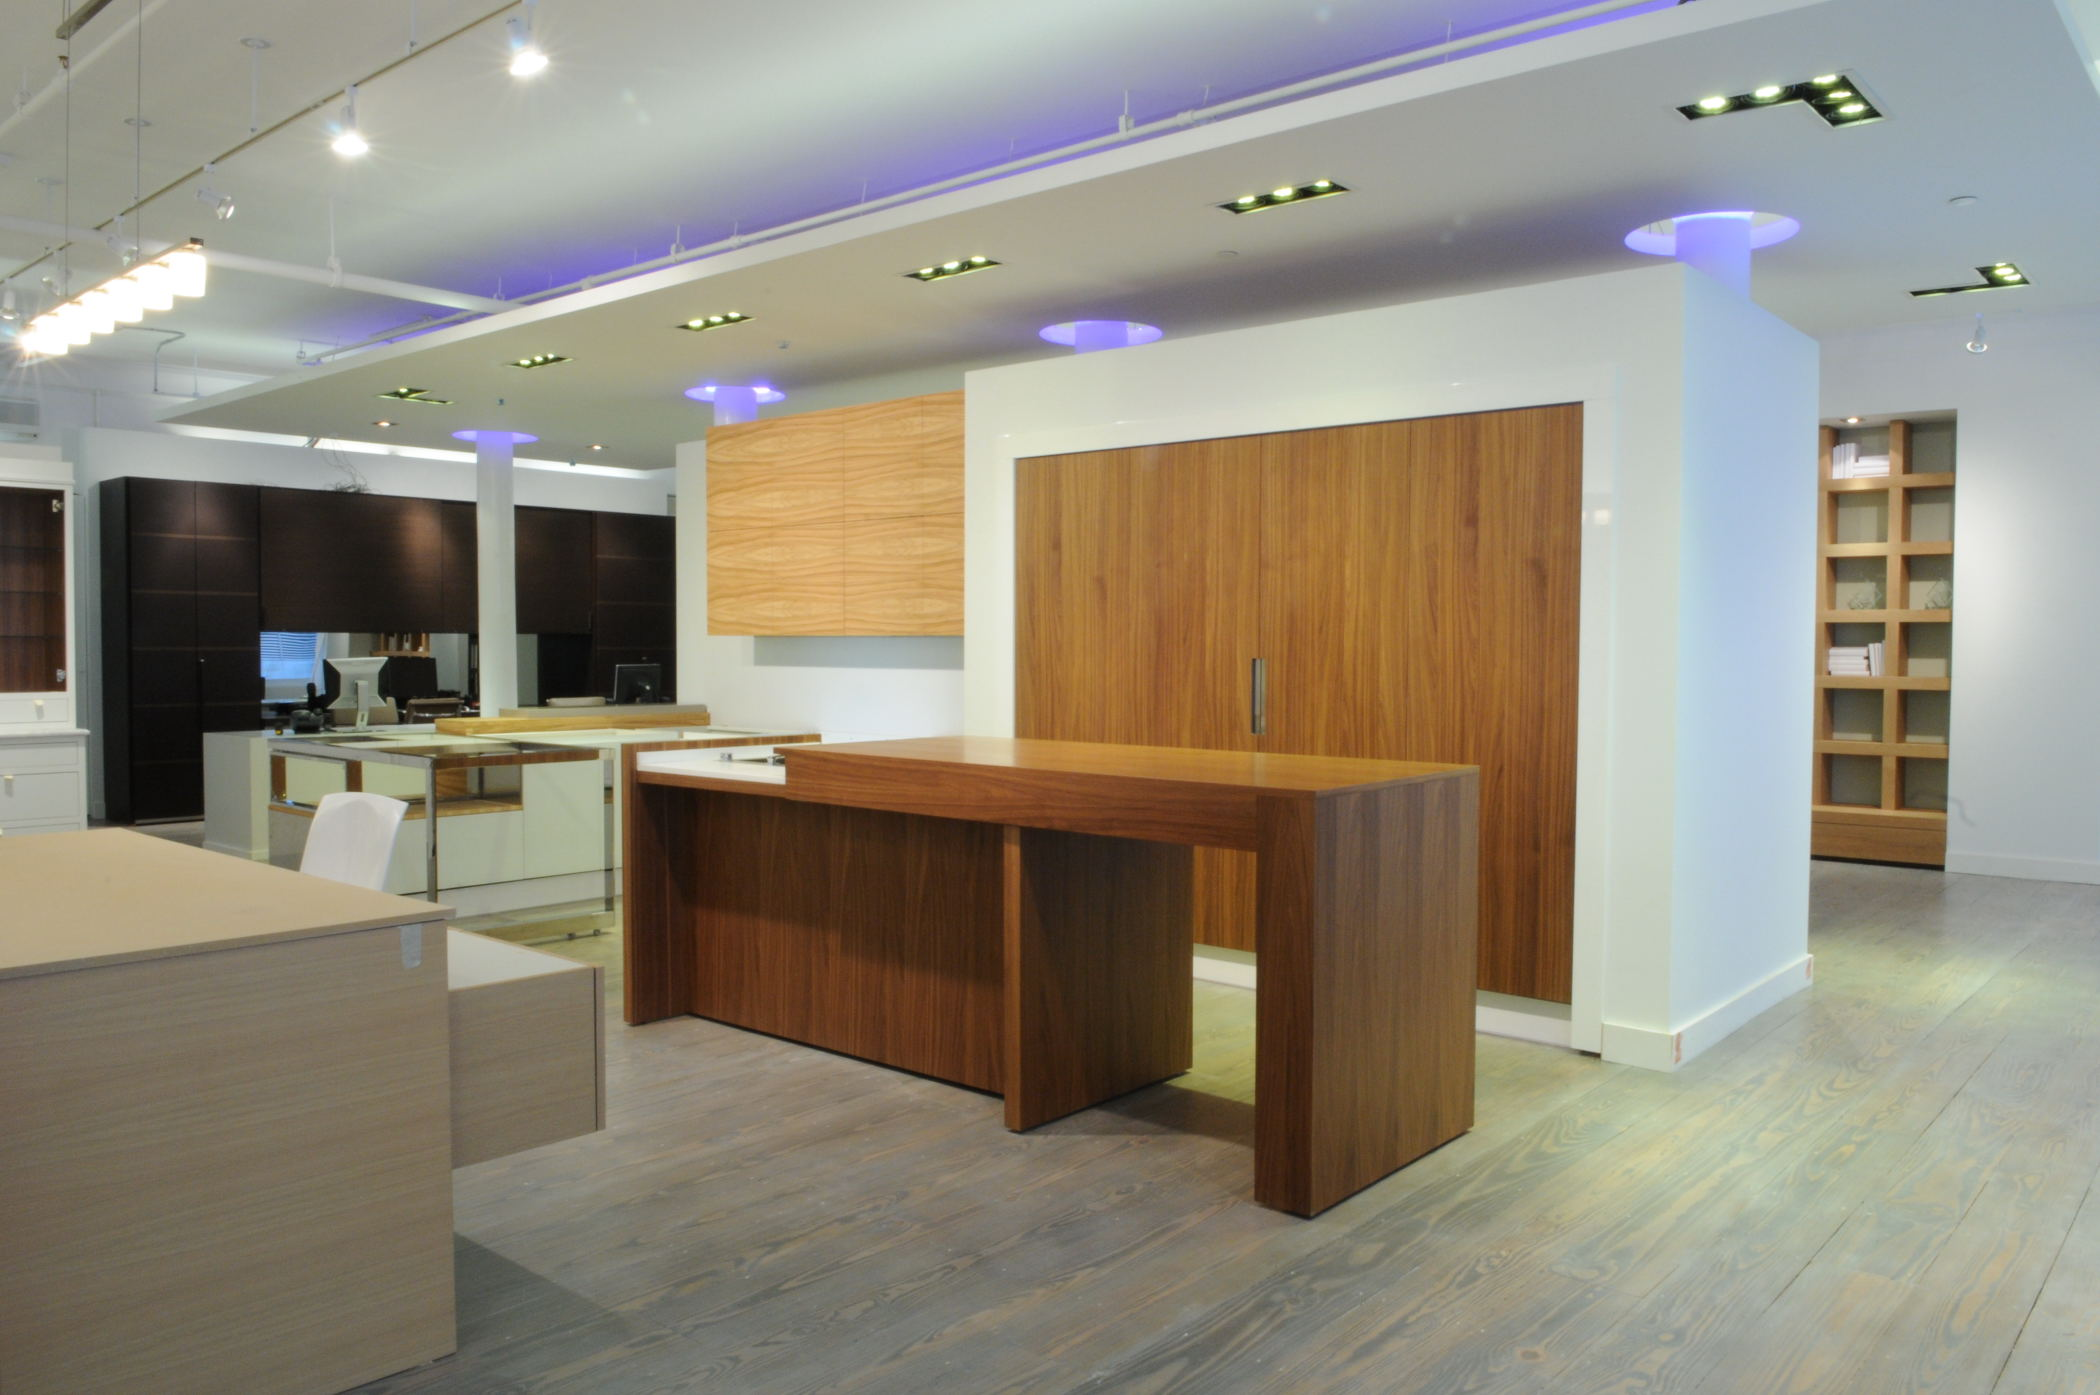 Urban homes announce the opening of the new urban homes for Aster cucine kitchen cabinets